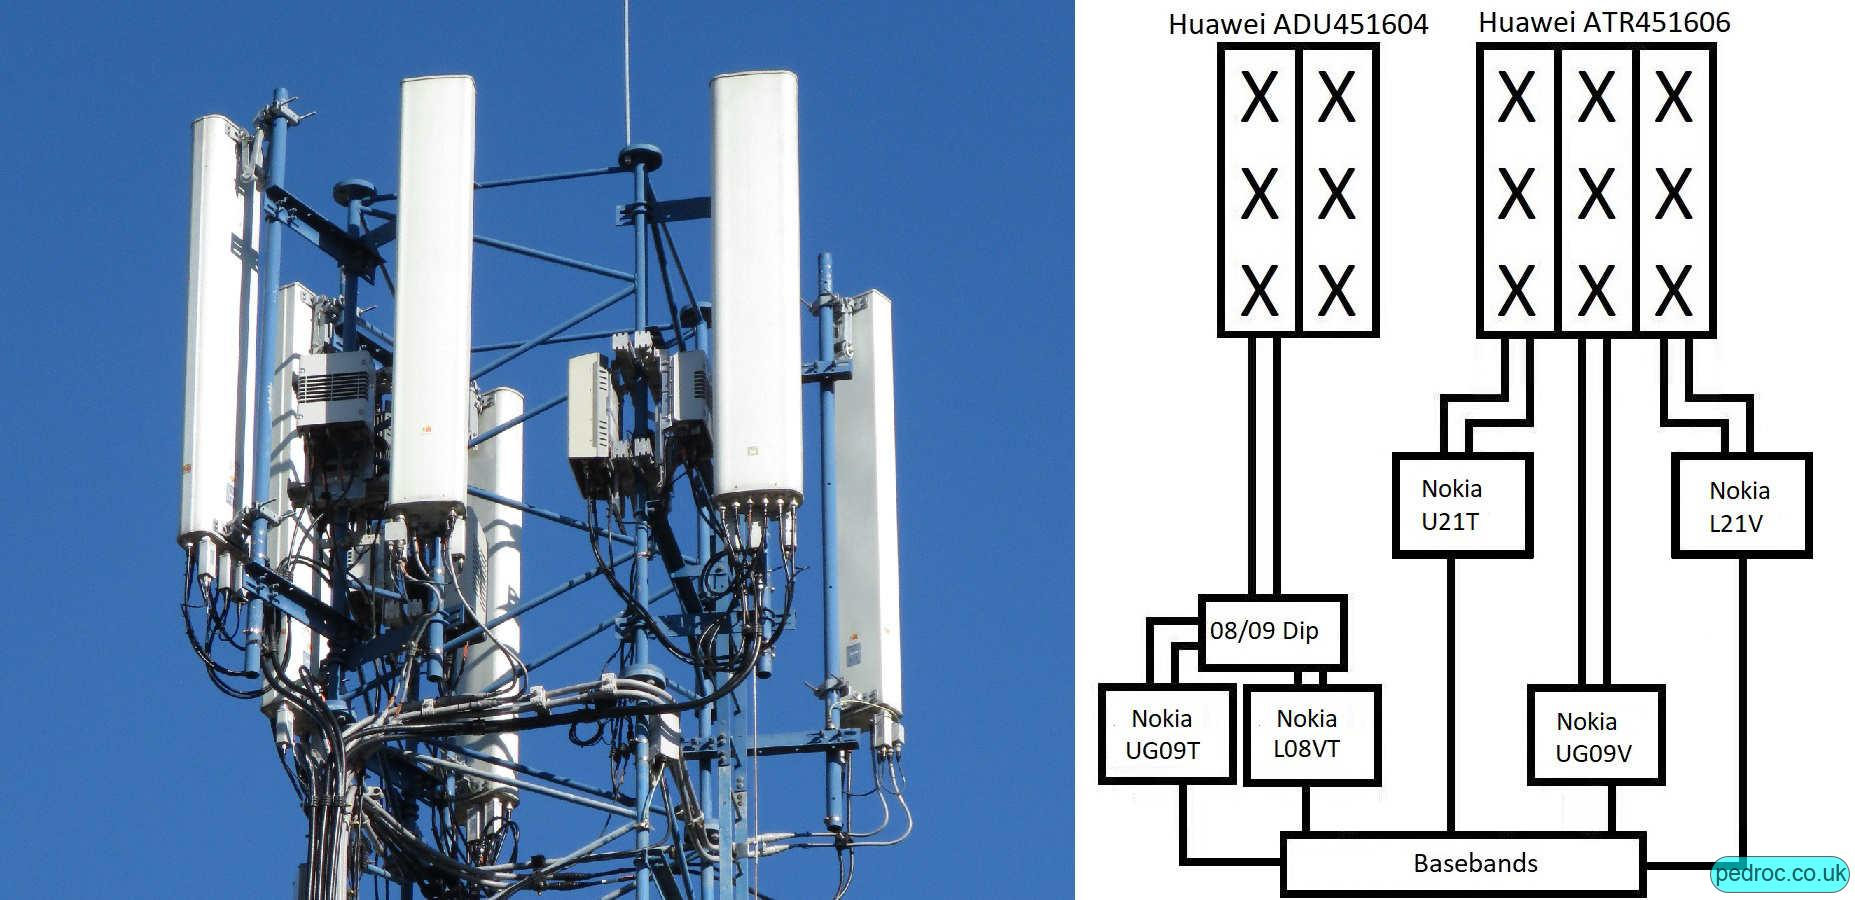 Vodafone Nokia Medium capacity site, Huawei ADU and ATR antennas with separate 900MHz and 2100MHz.